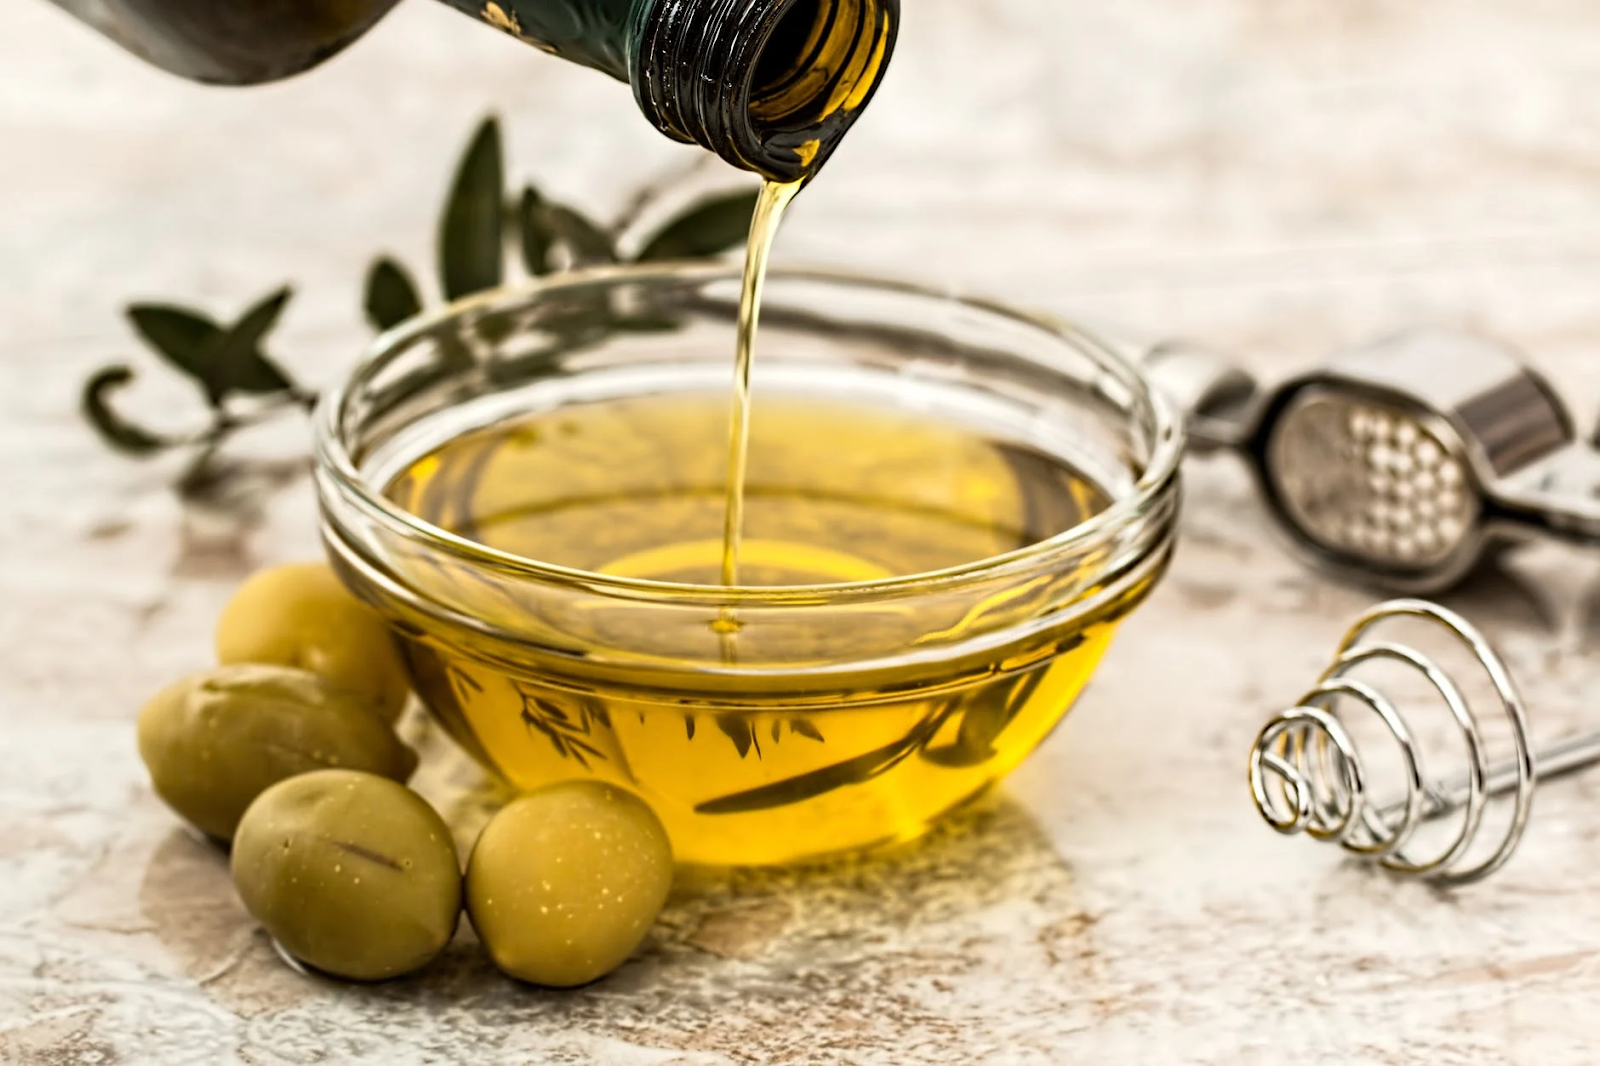 pouring olive oil on a saucer